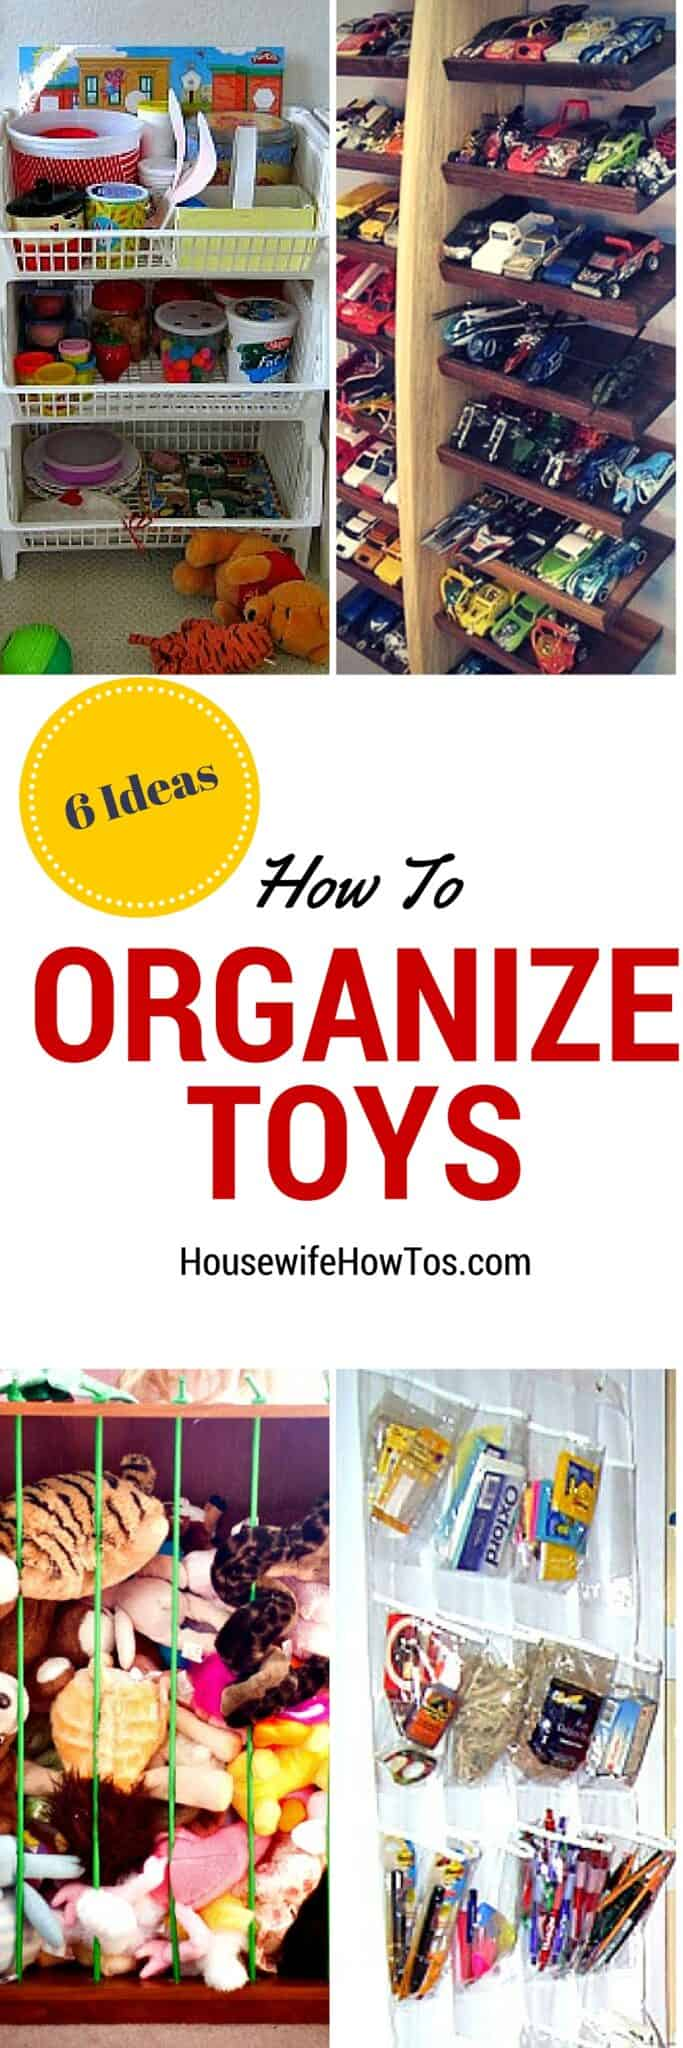 How To Organize Toys #organizing #toystorage #homeorganization #cluttercontrol #declutter #unclutter #storagesolutions